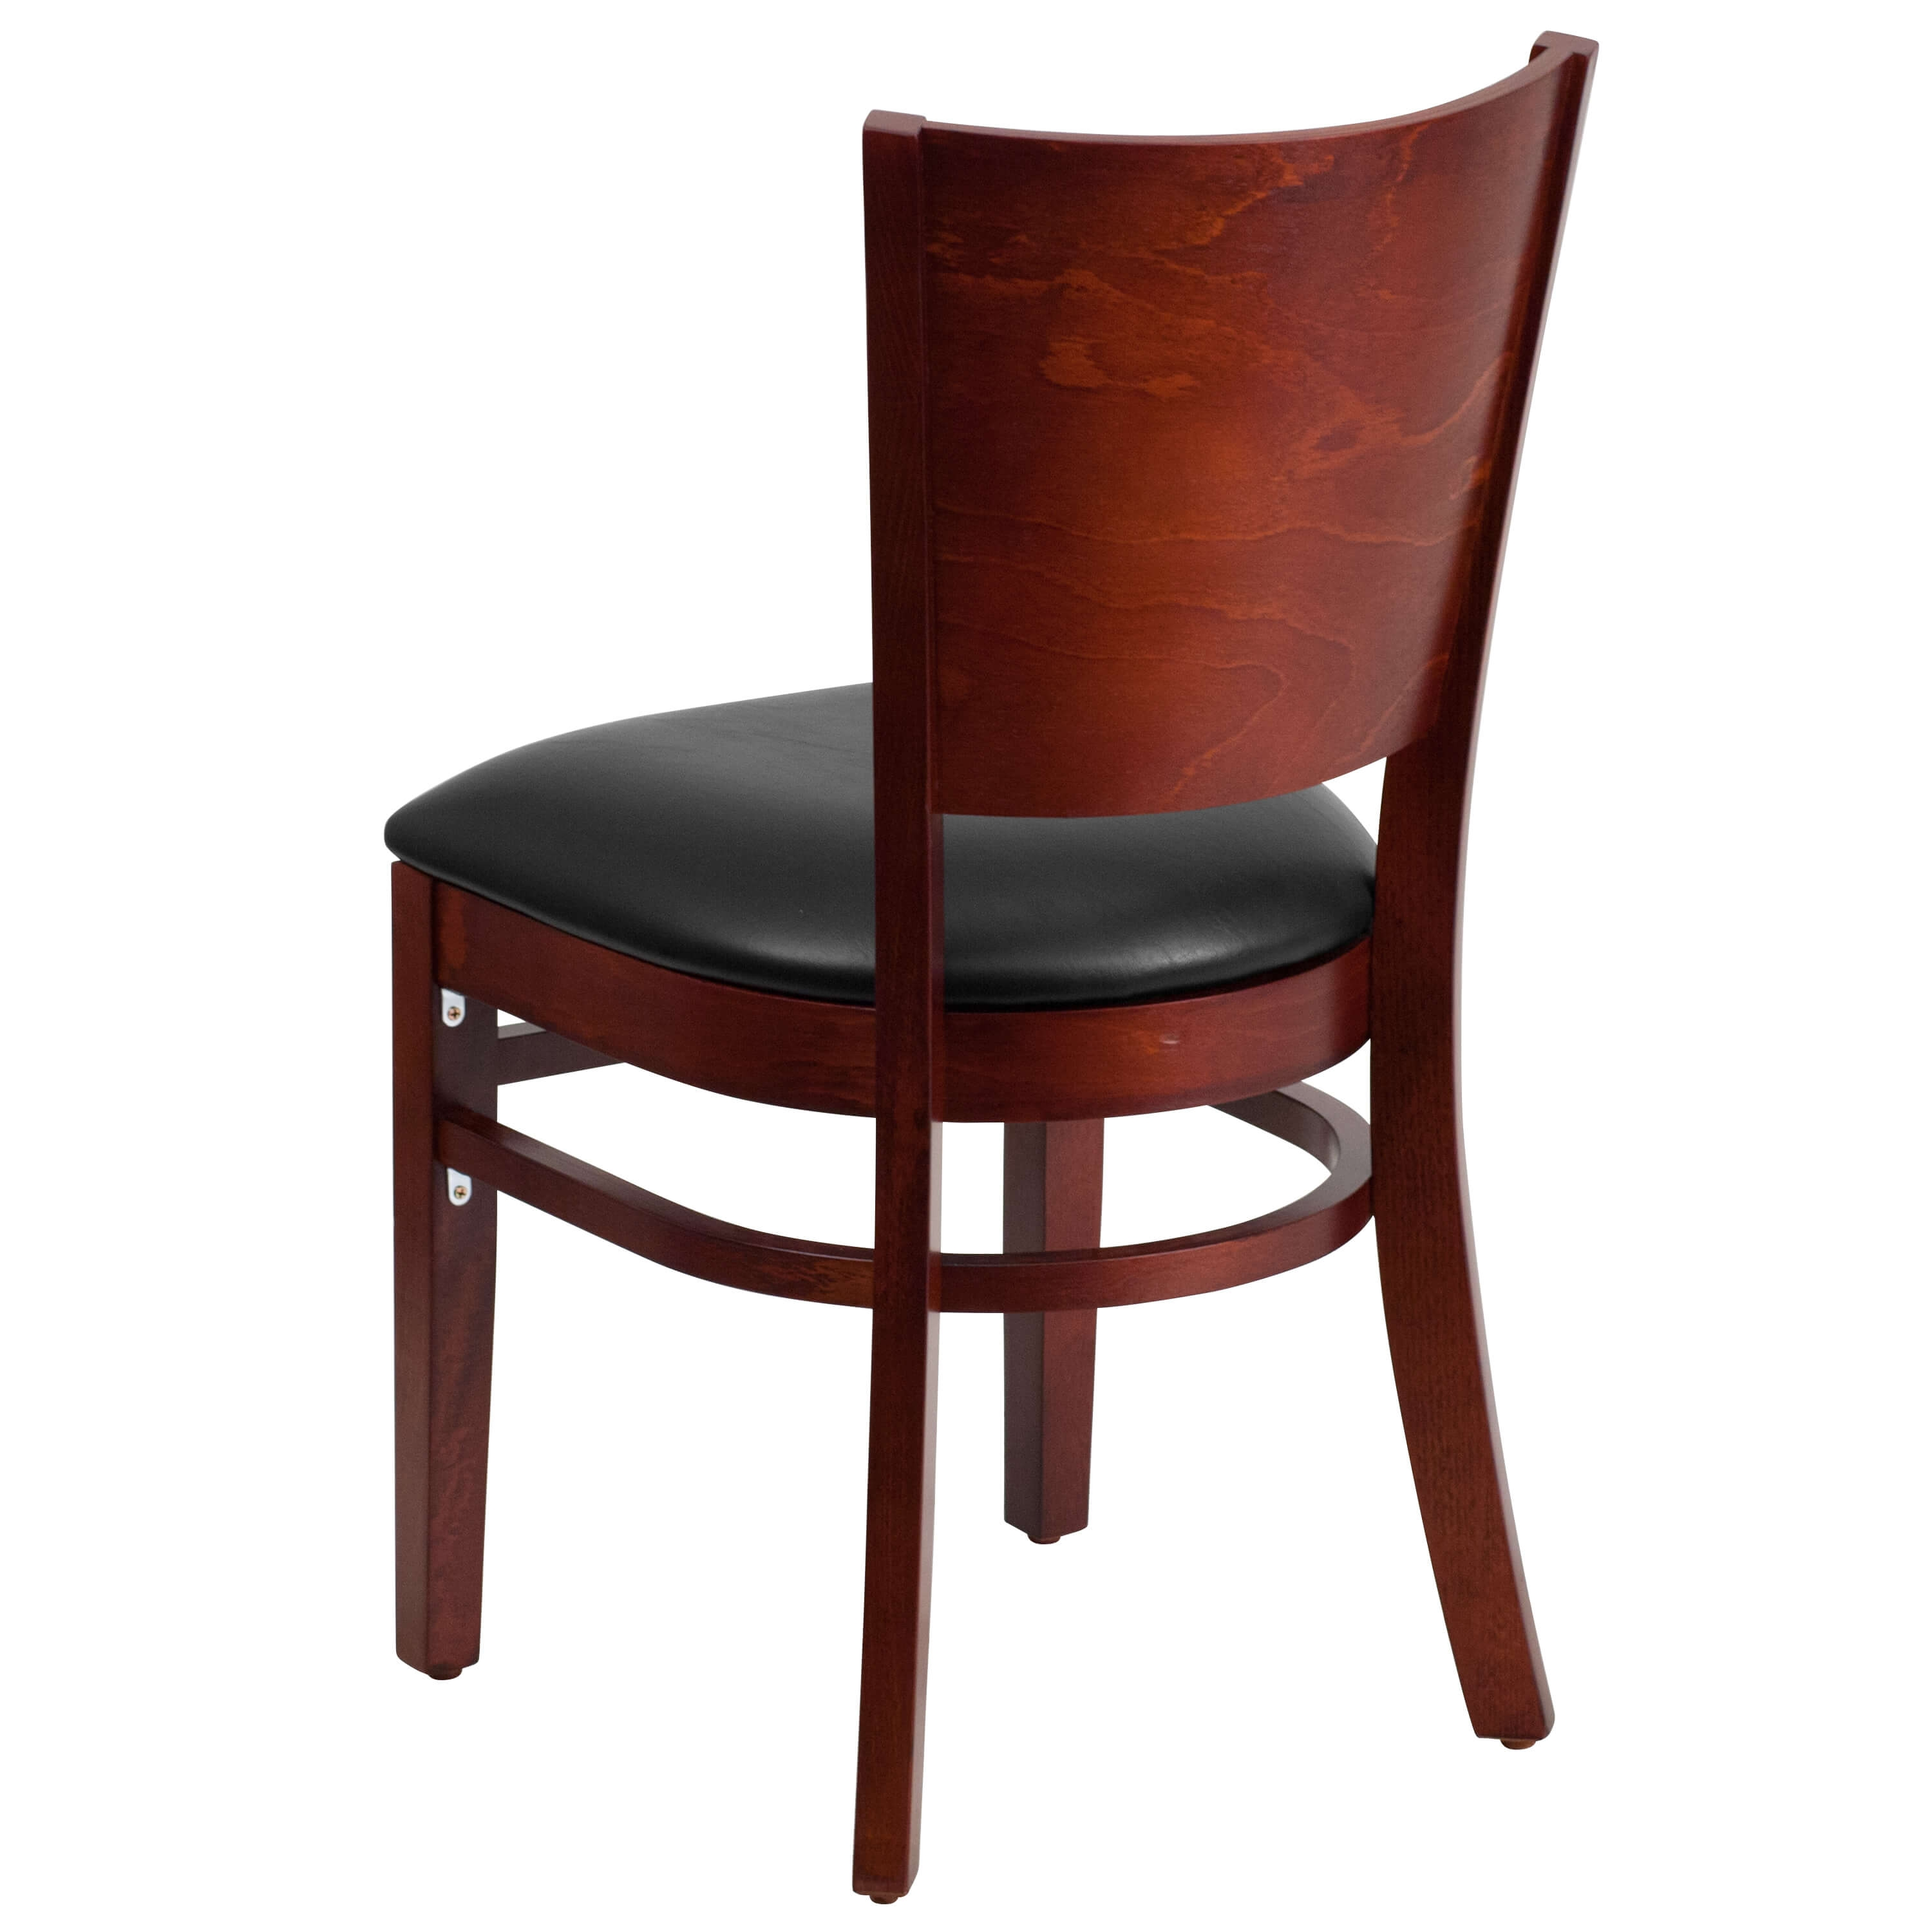 Solid wood dining chairs back view